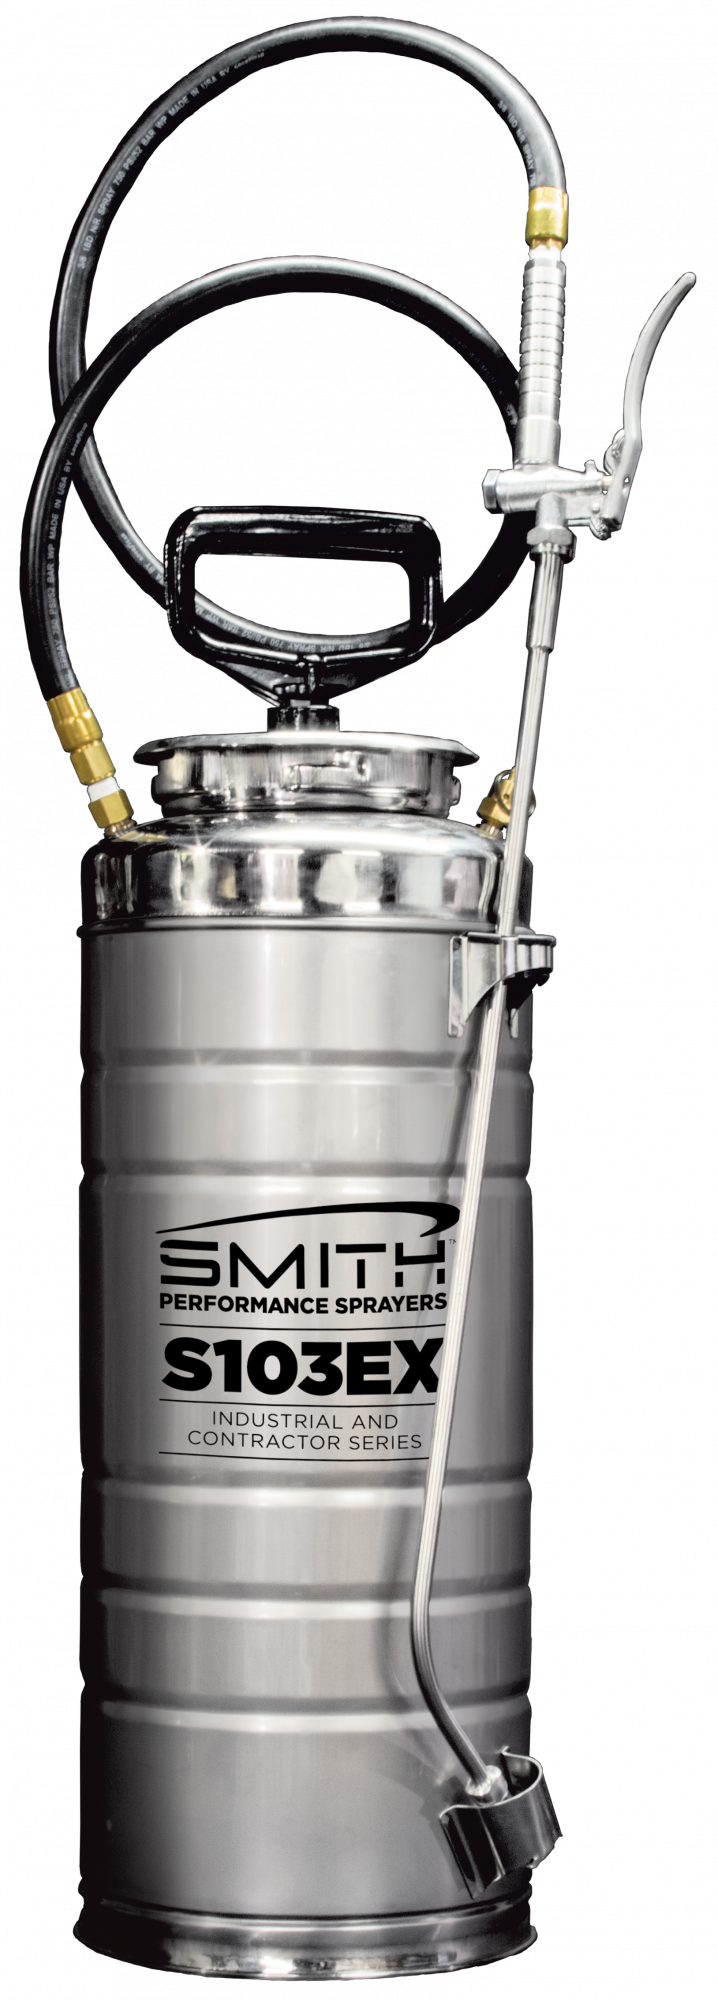 Smith Performance™ S103EX Stainless Steel Concrete Sprayer with Viton® Extreme Seals